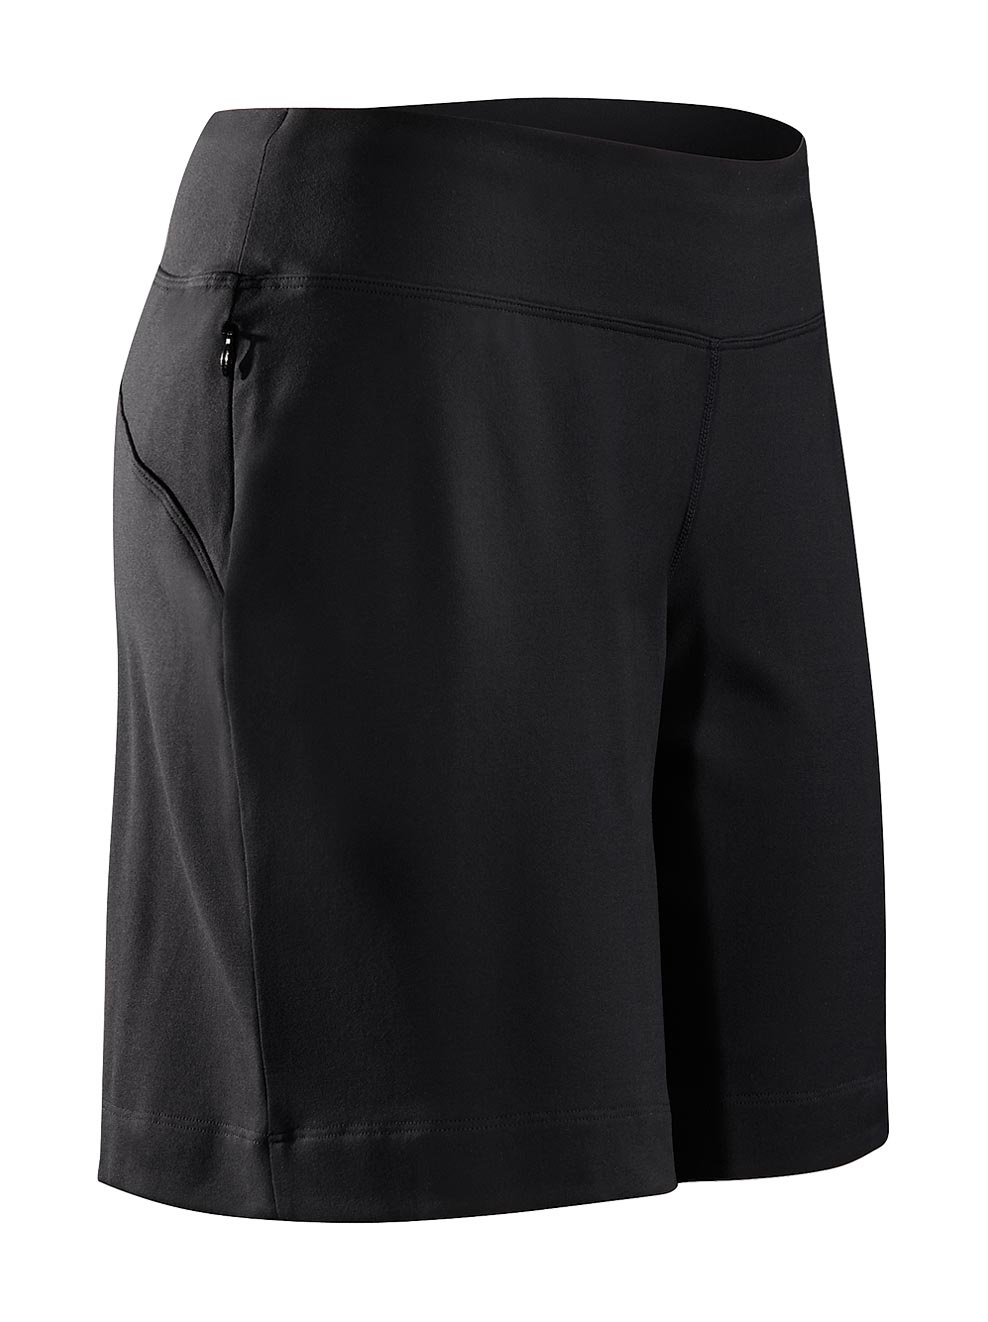 Arcteryx Black Escala Short